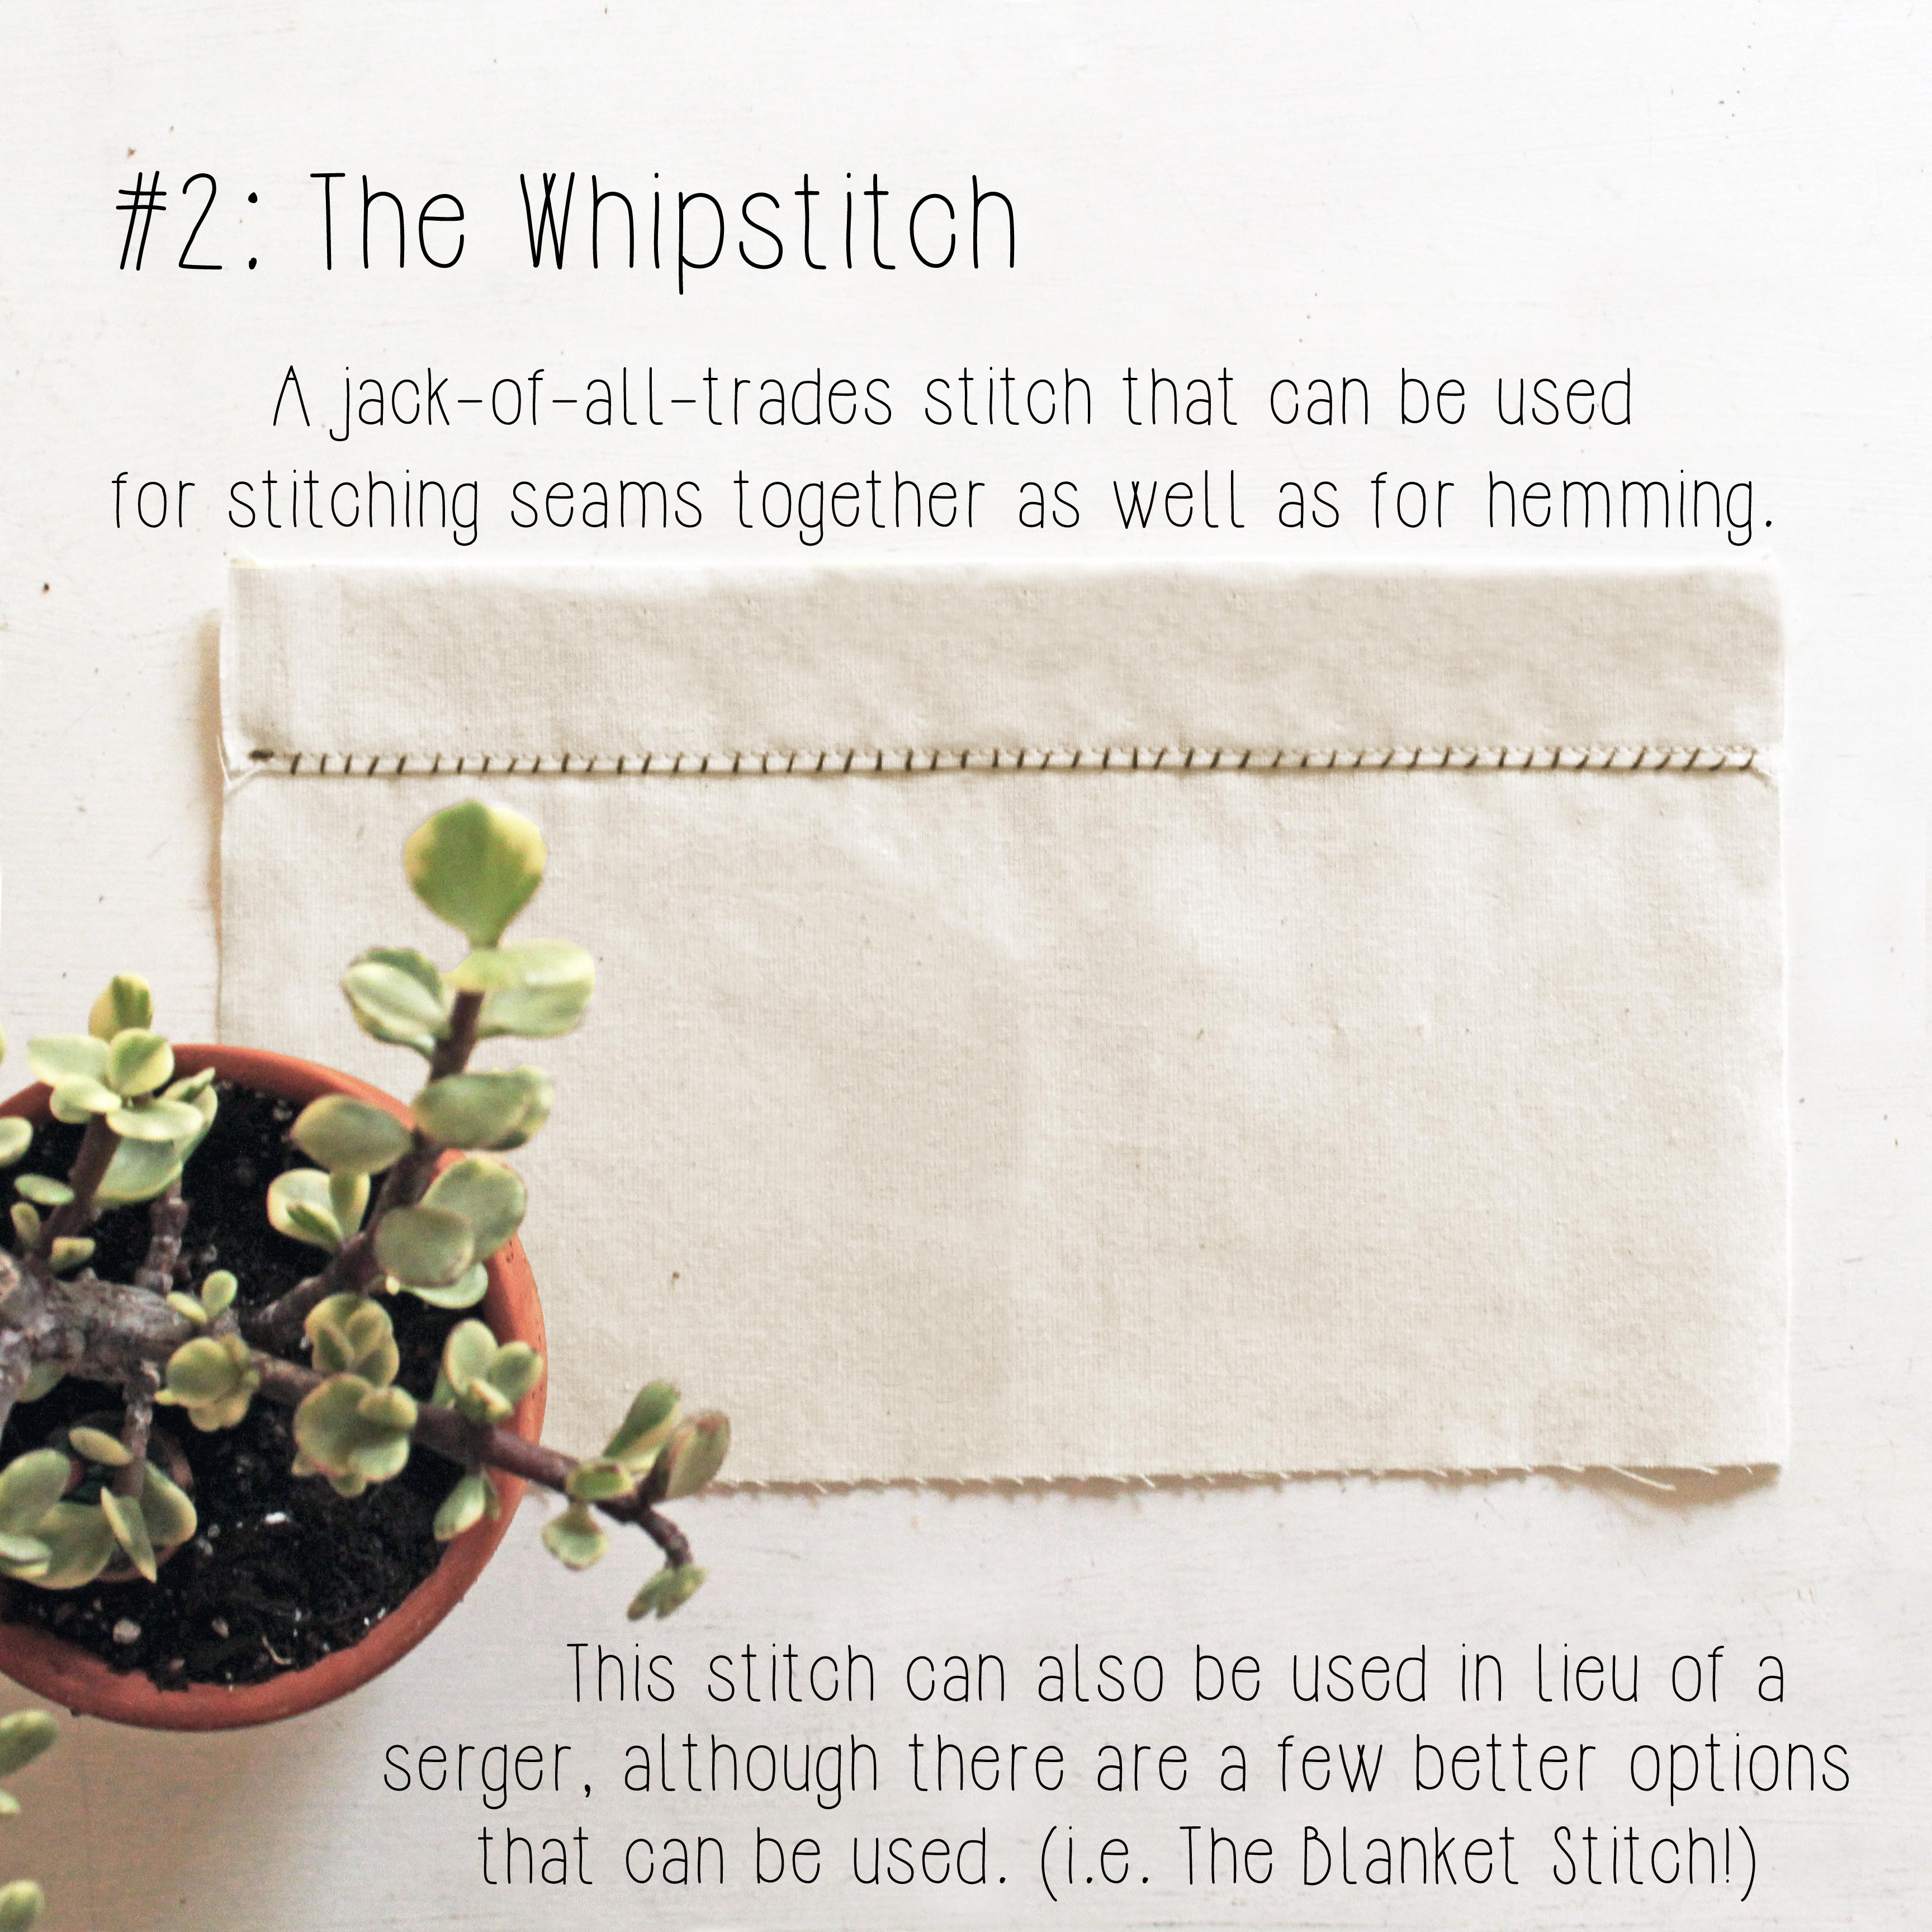 Different types of hand stitches: The whipstitch